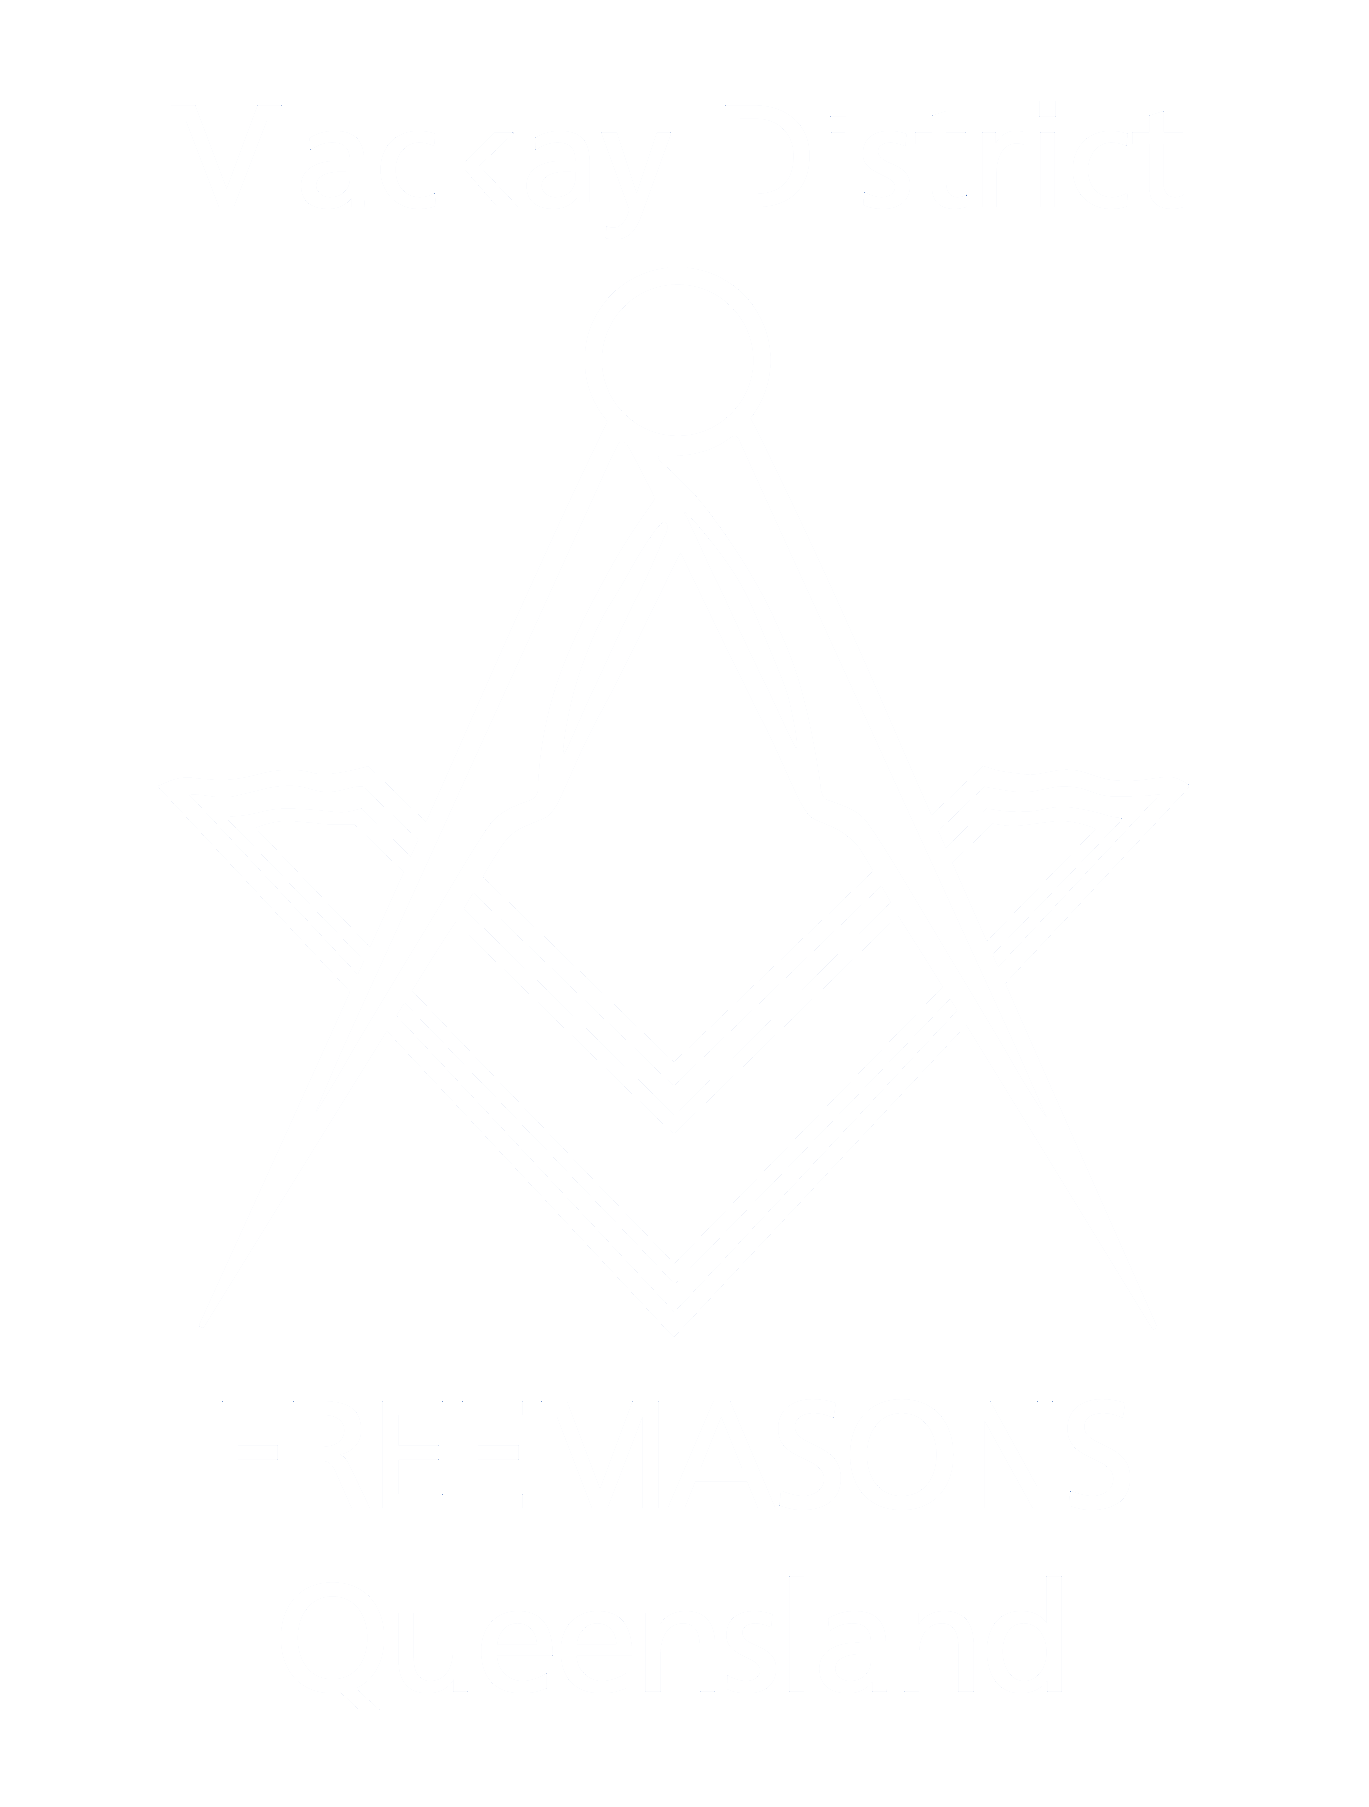 Mackay District Freemasons